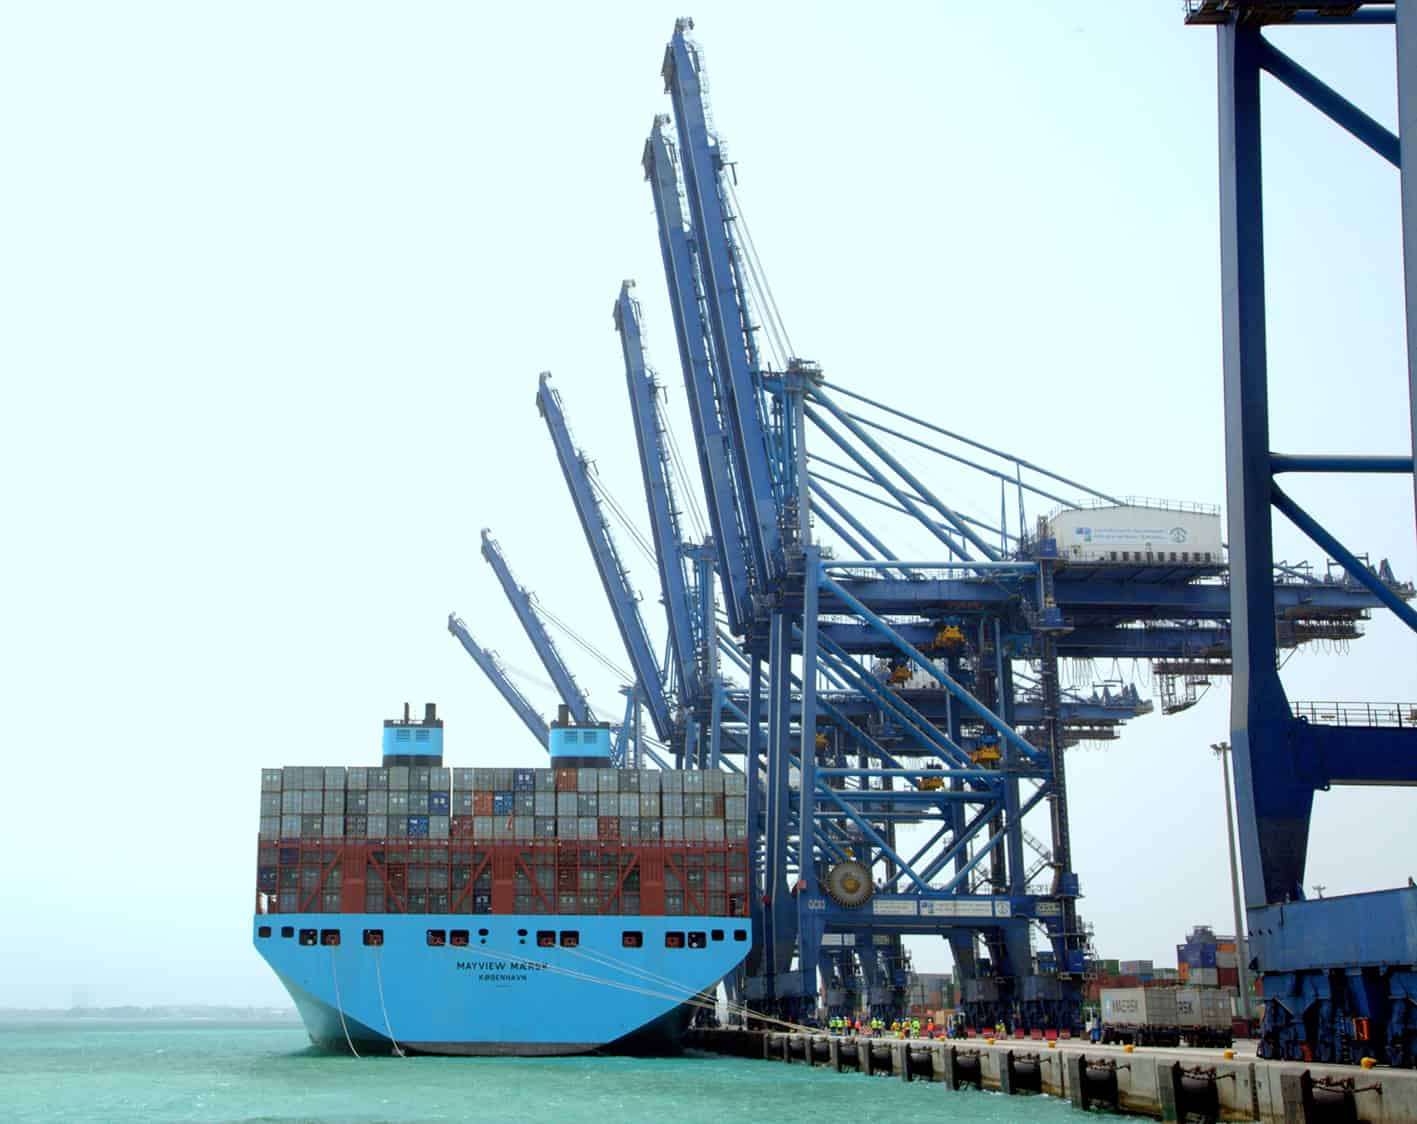 Maersk mega ship calls at Jeddah's Red Sea Gateway Terminal